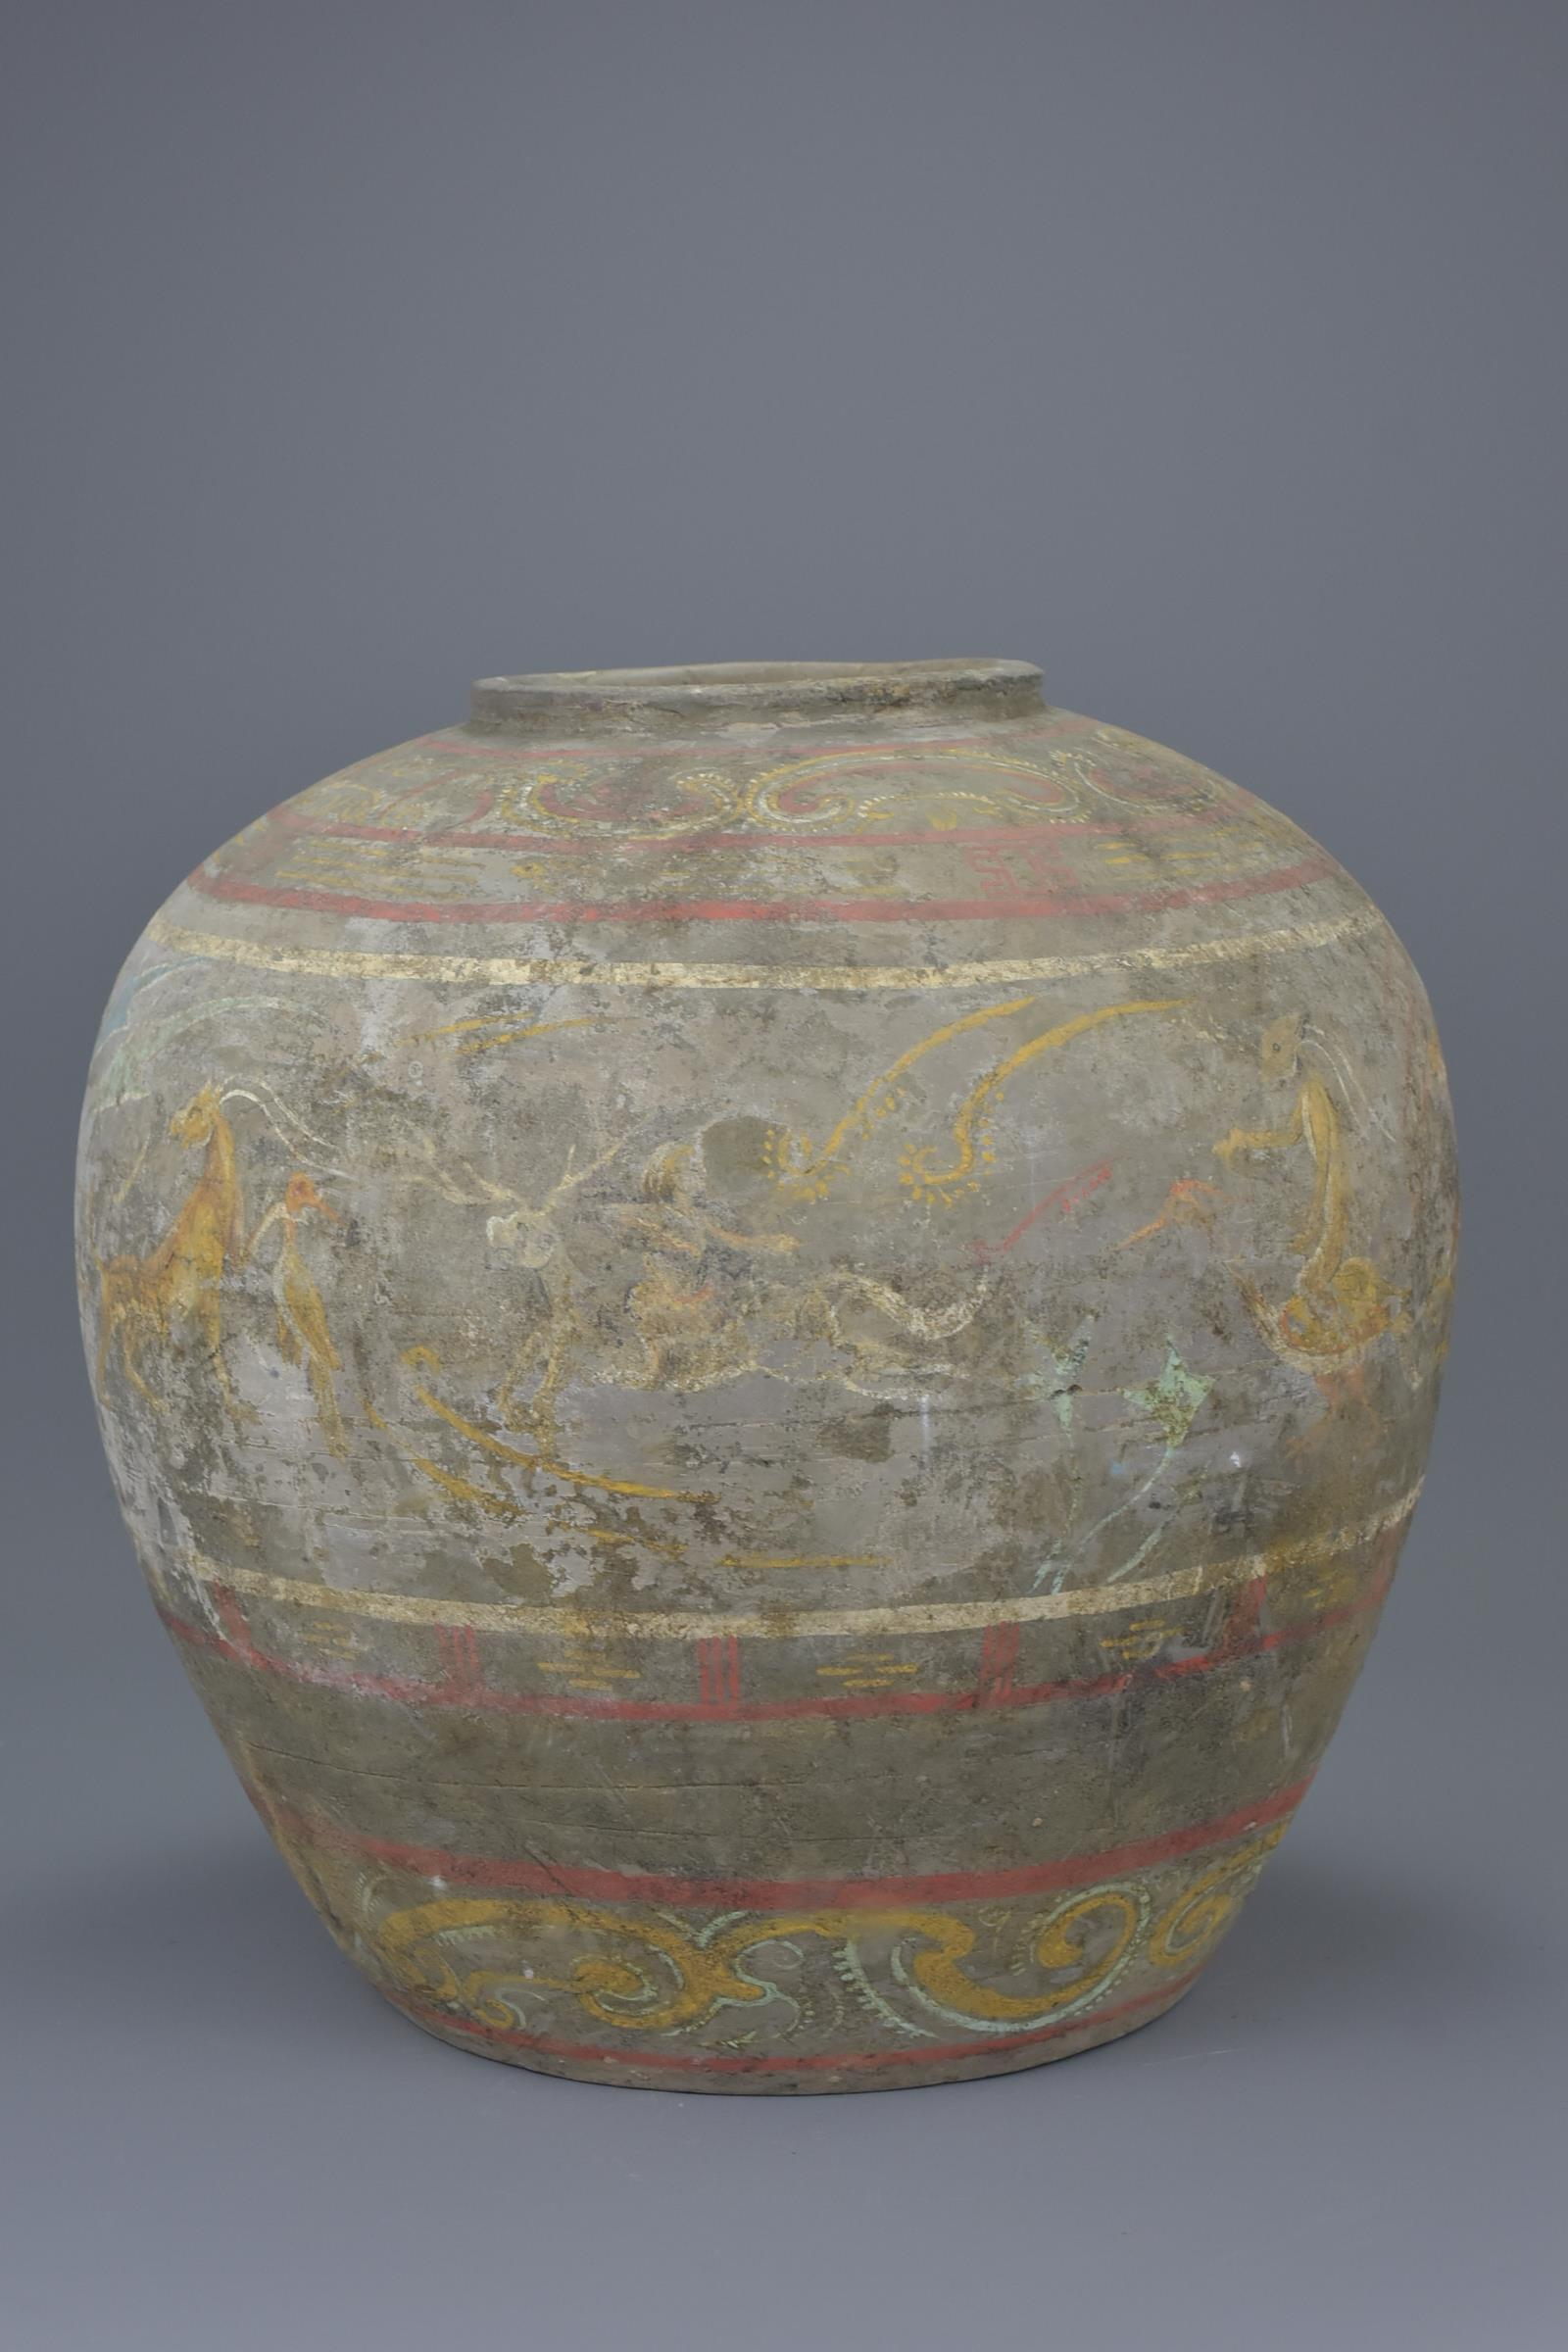 Lot 59 - A Large & Rare Chinese Han Dynasty Painted Pottery Jar with Oxford TL Test